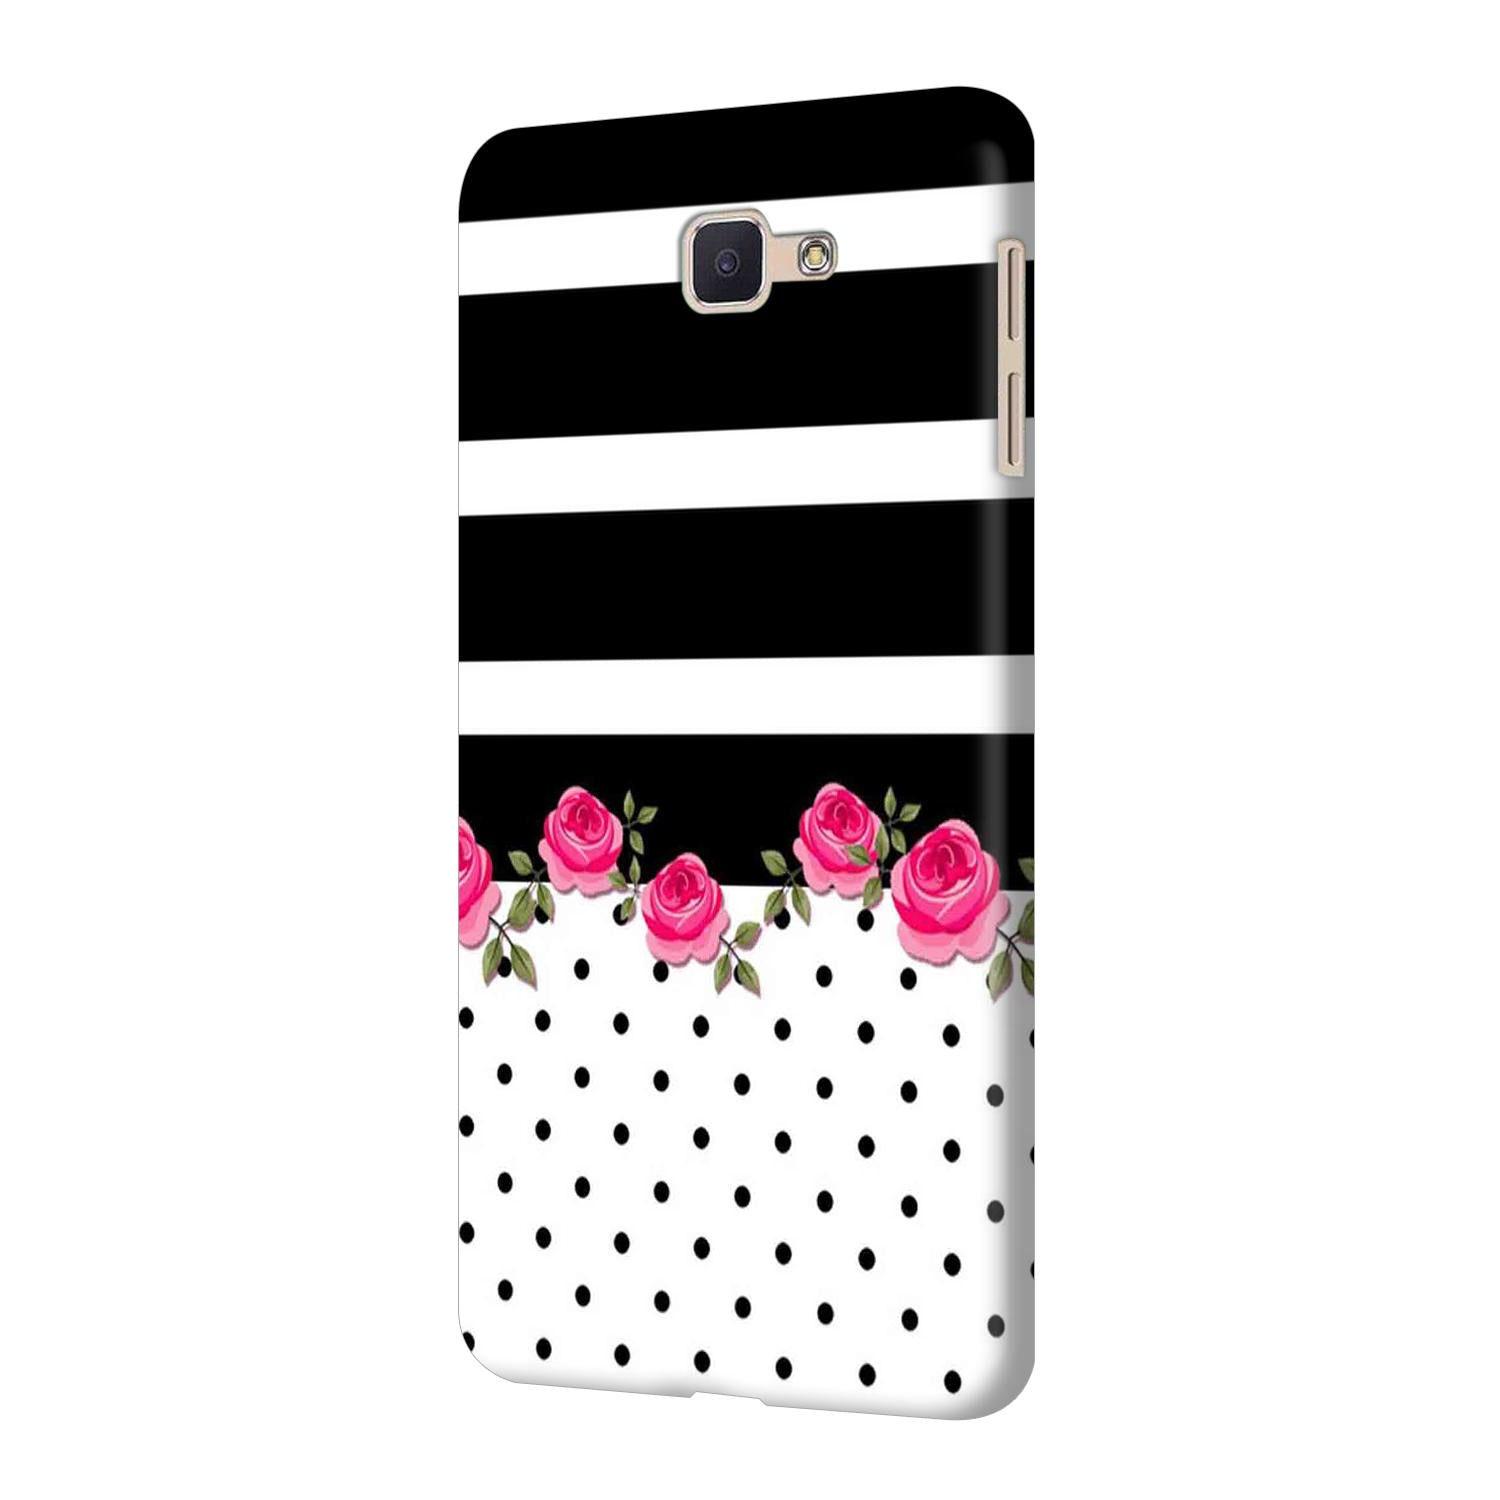 Rose Polka Stripes Samsung Galaxy J7 Prime Mobile Cover Case - MADANYU